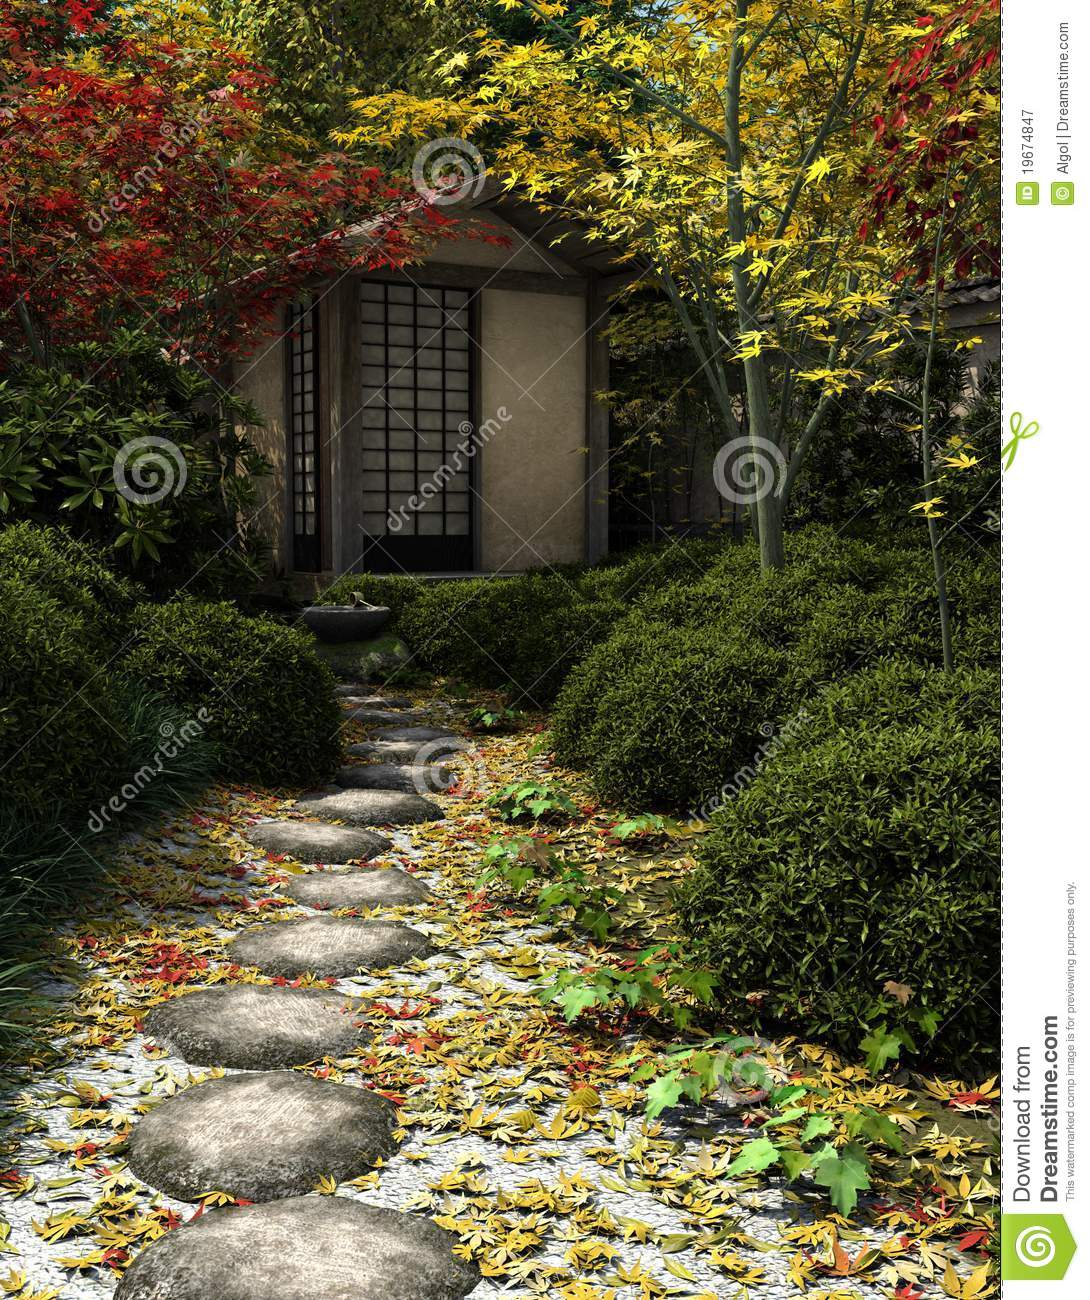 Japanese tea house and garden stock illustration image for Japanese house garden